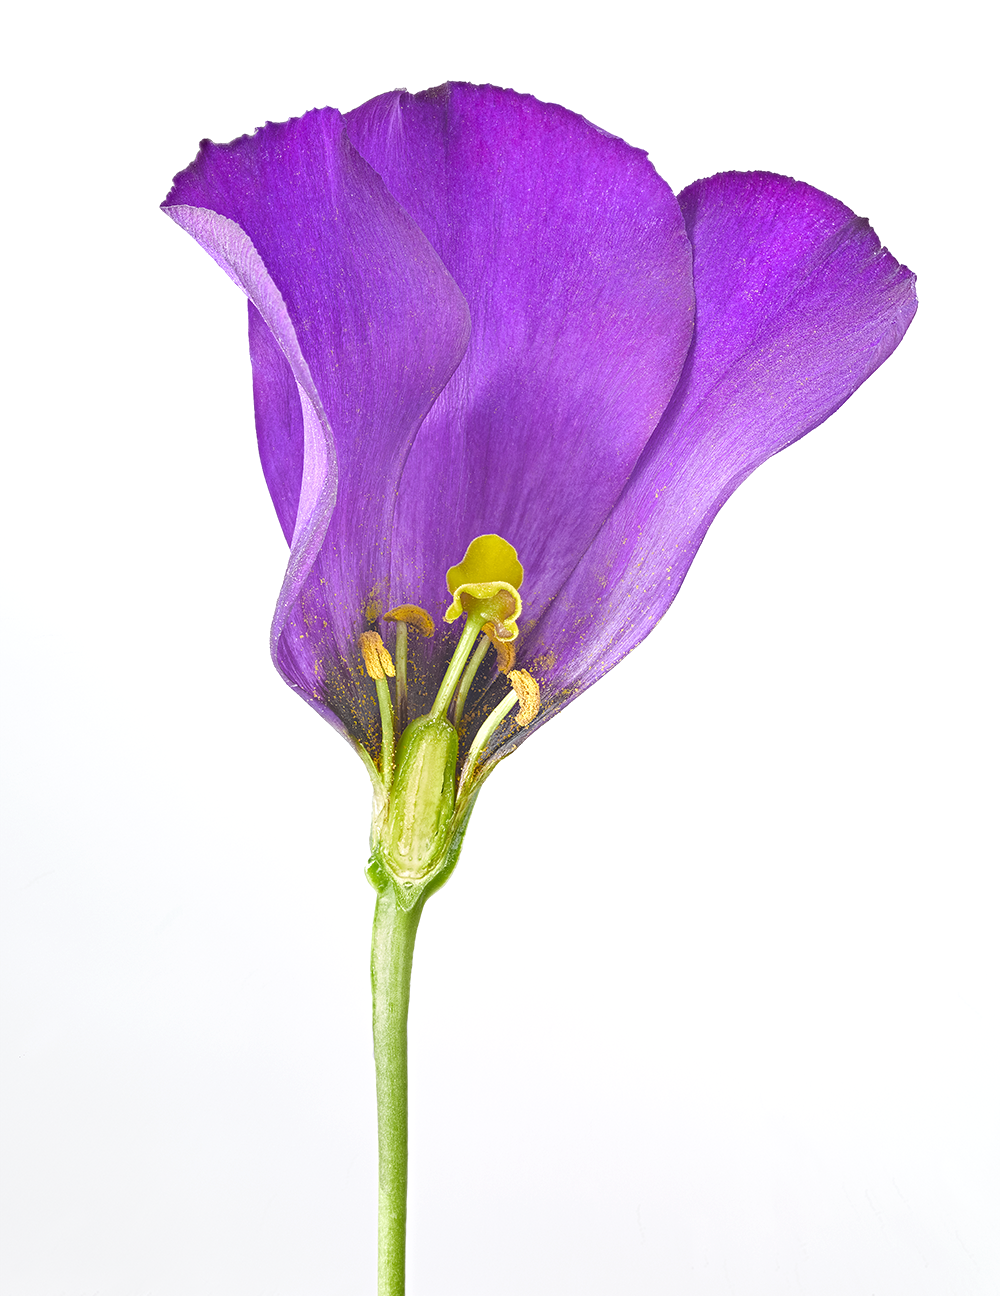 Cross section of a flower. Photography by  Gary Ombler  for DK.